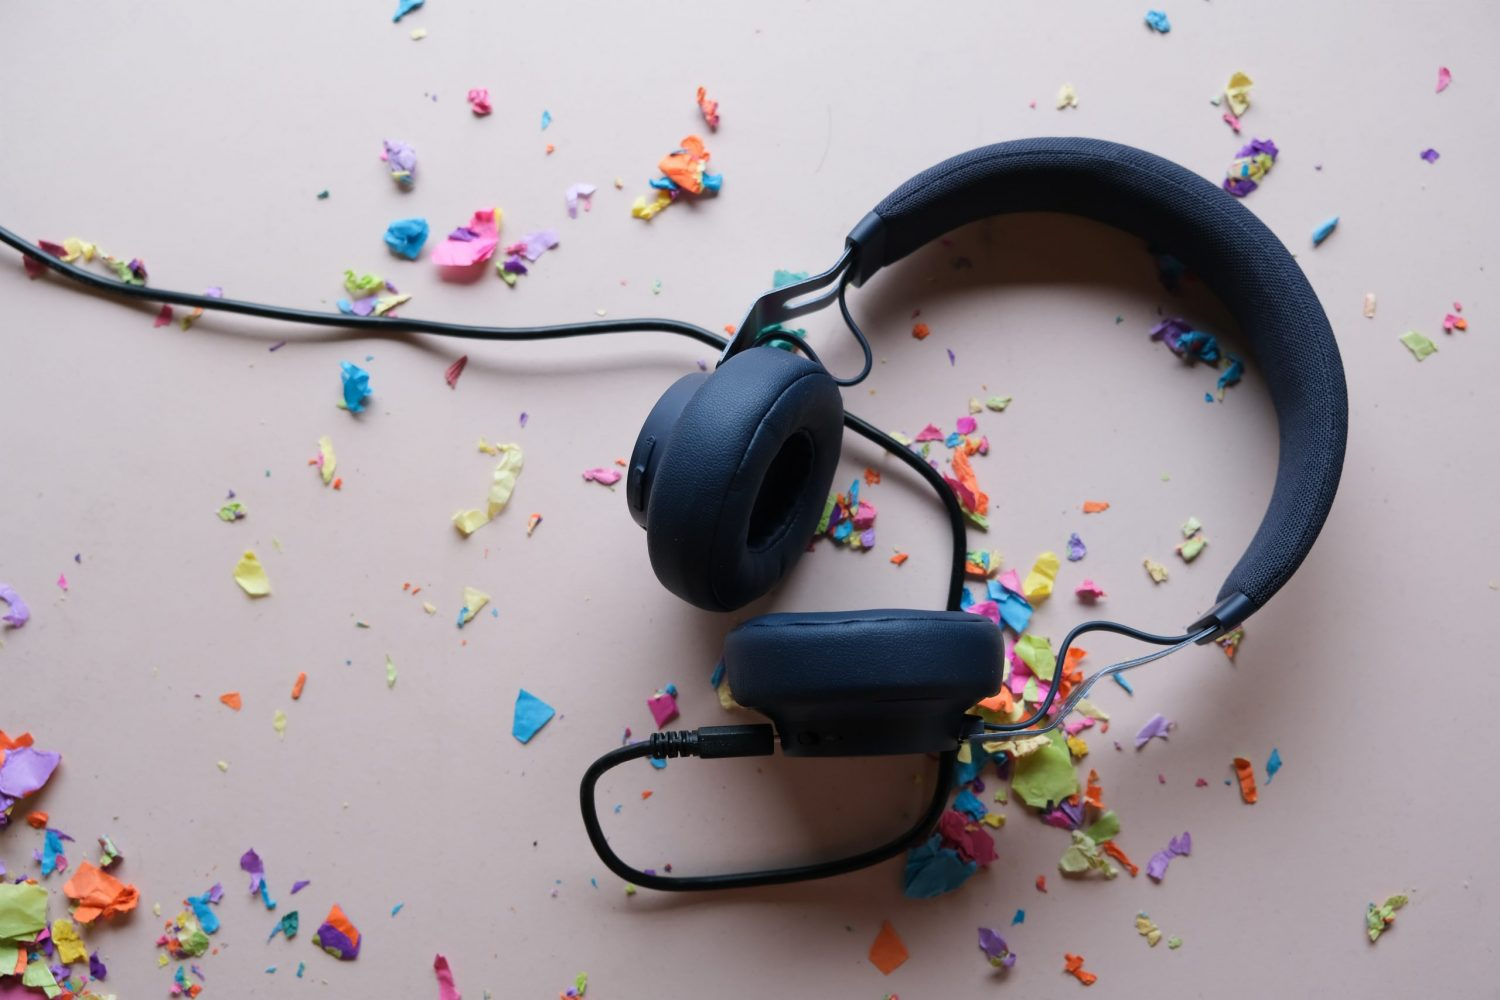 8 Podcasts That Will Make You a Better Writer - Electric Literature